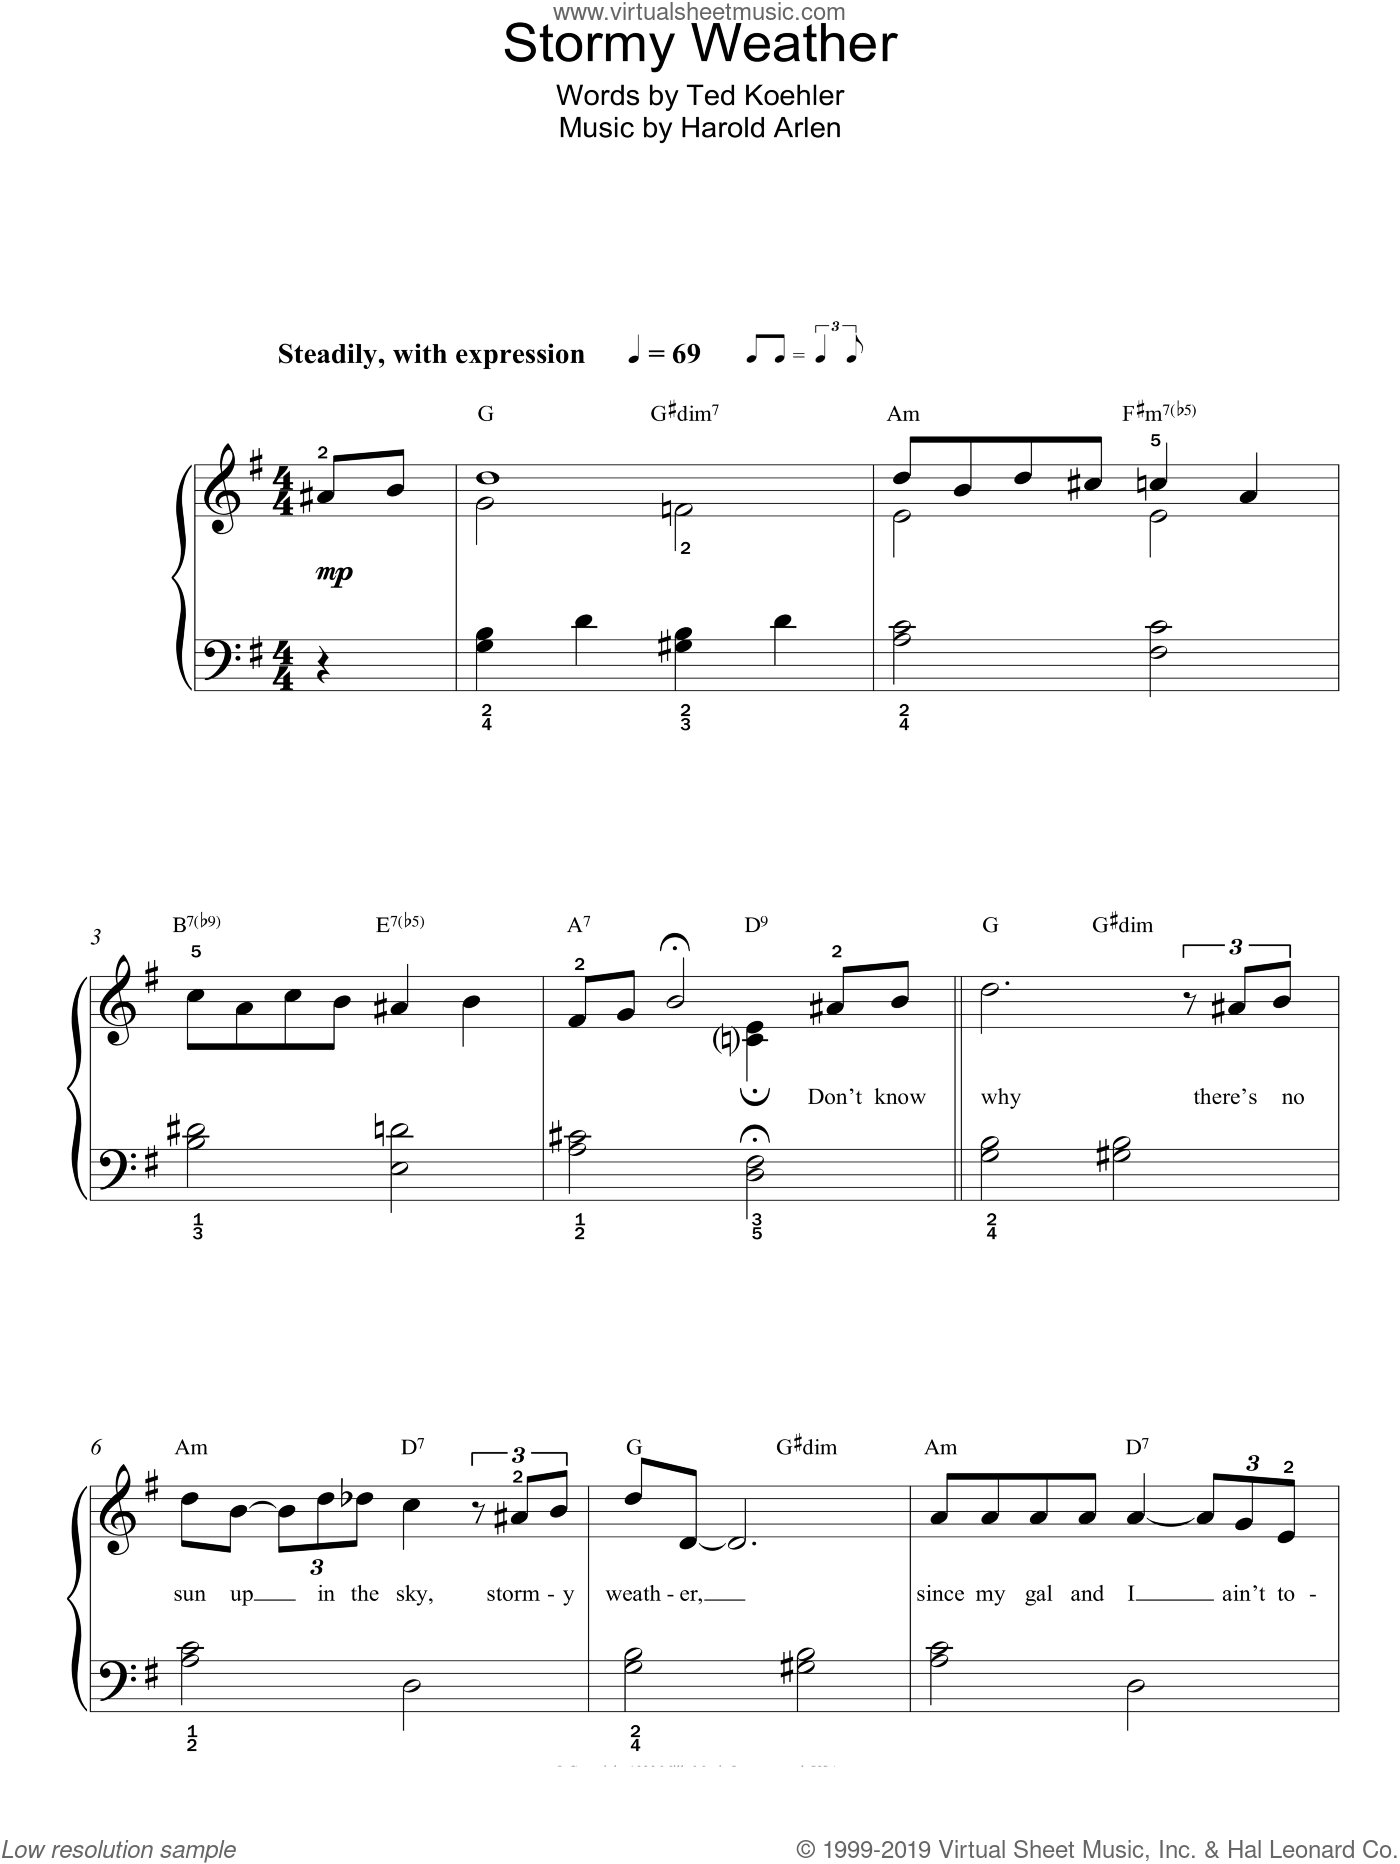 Stormy Weather (Keeps Rainin' All The Time) sheet music for piano solo by Lena Horne, Harold Arlen and Ted Koehler, easy skill level